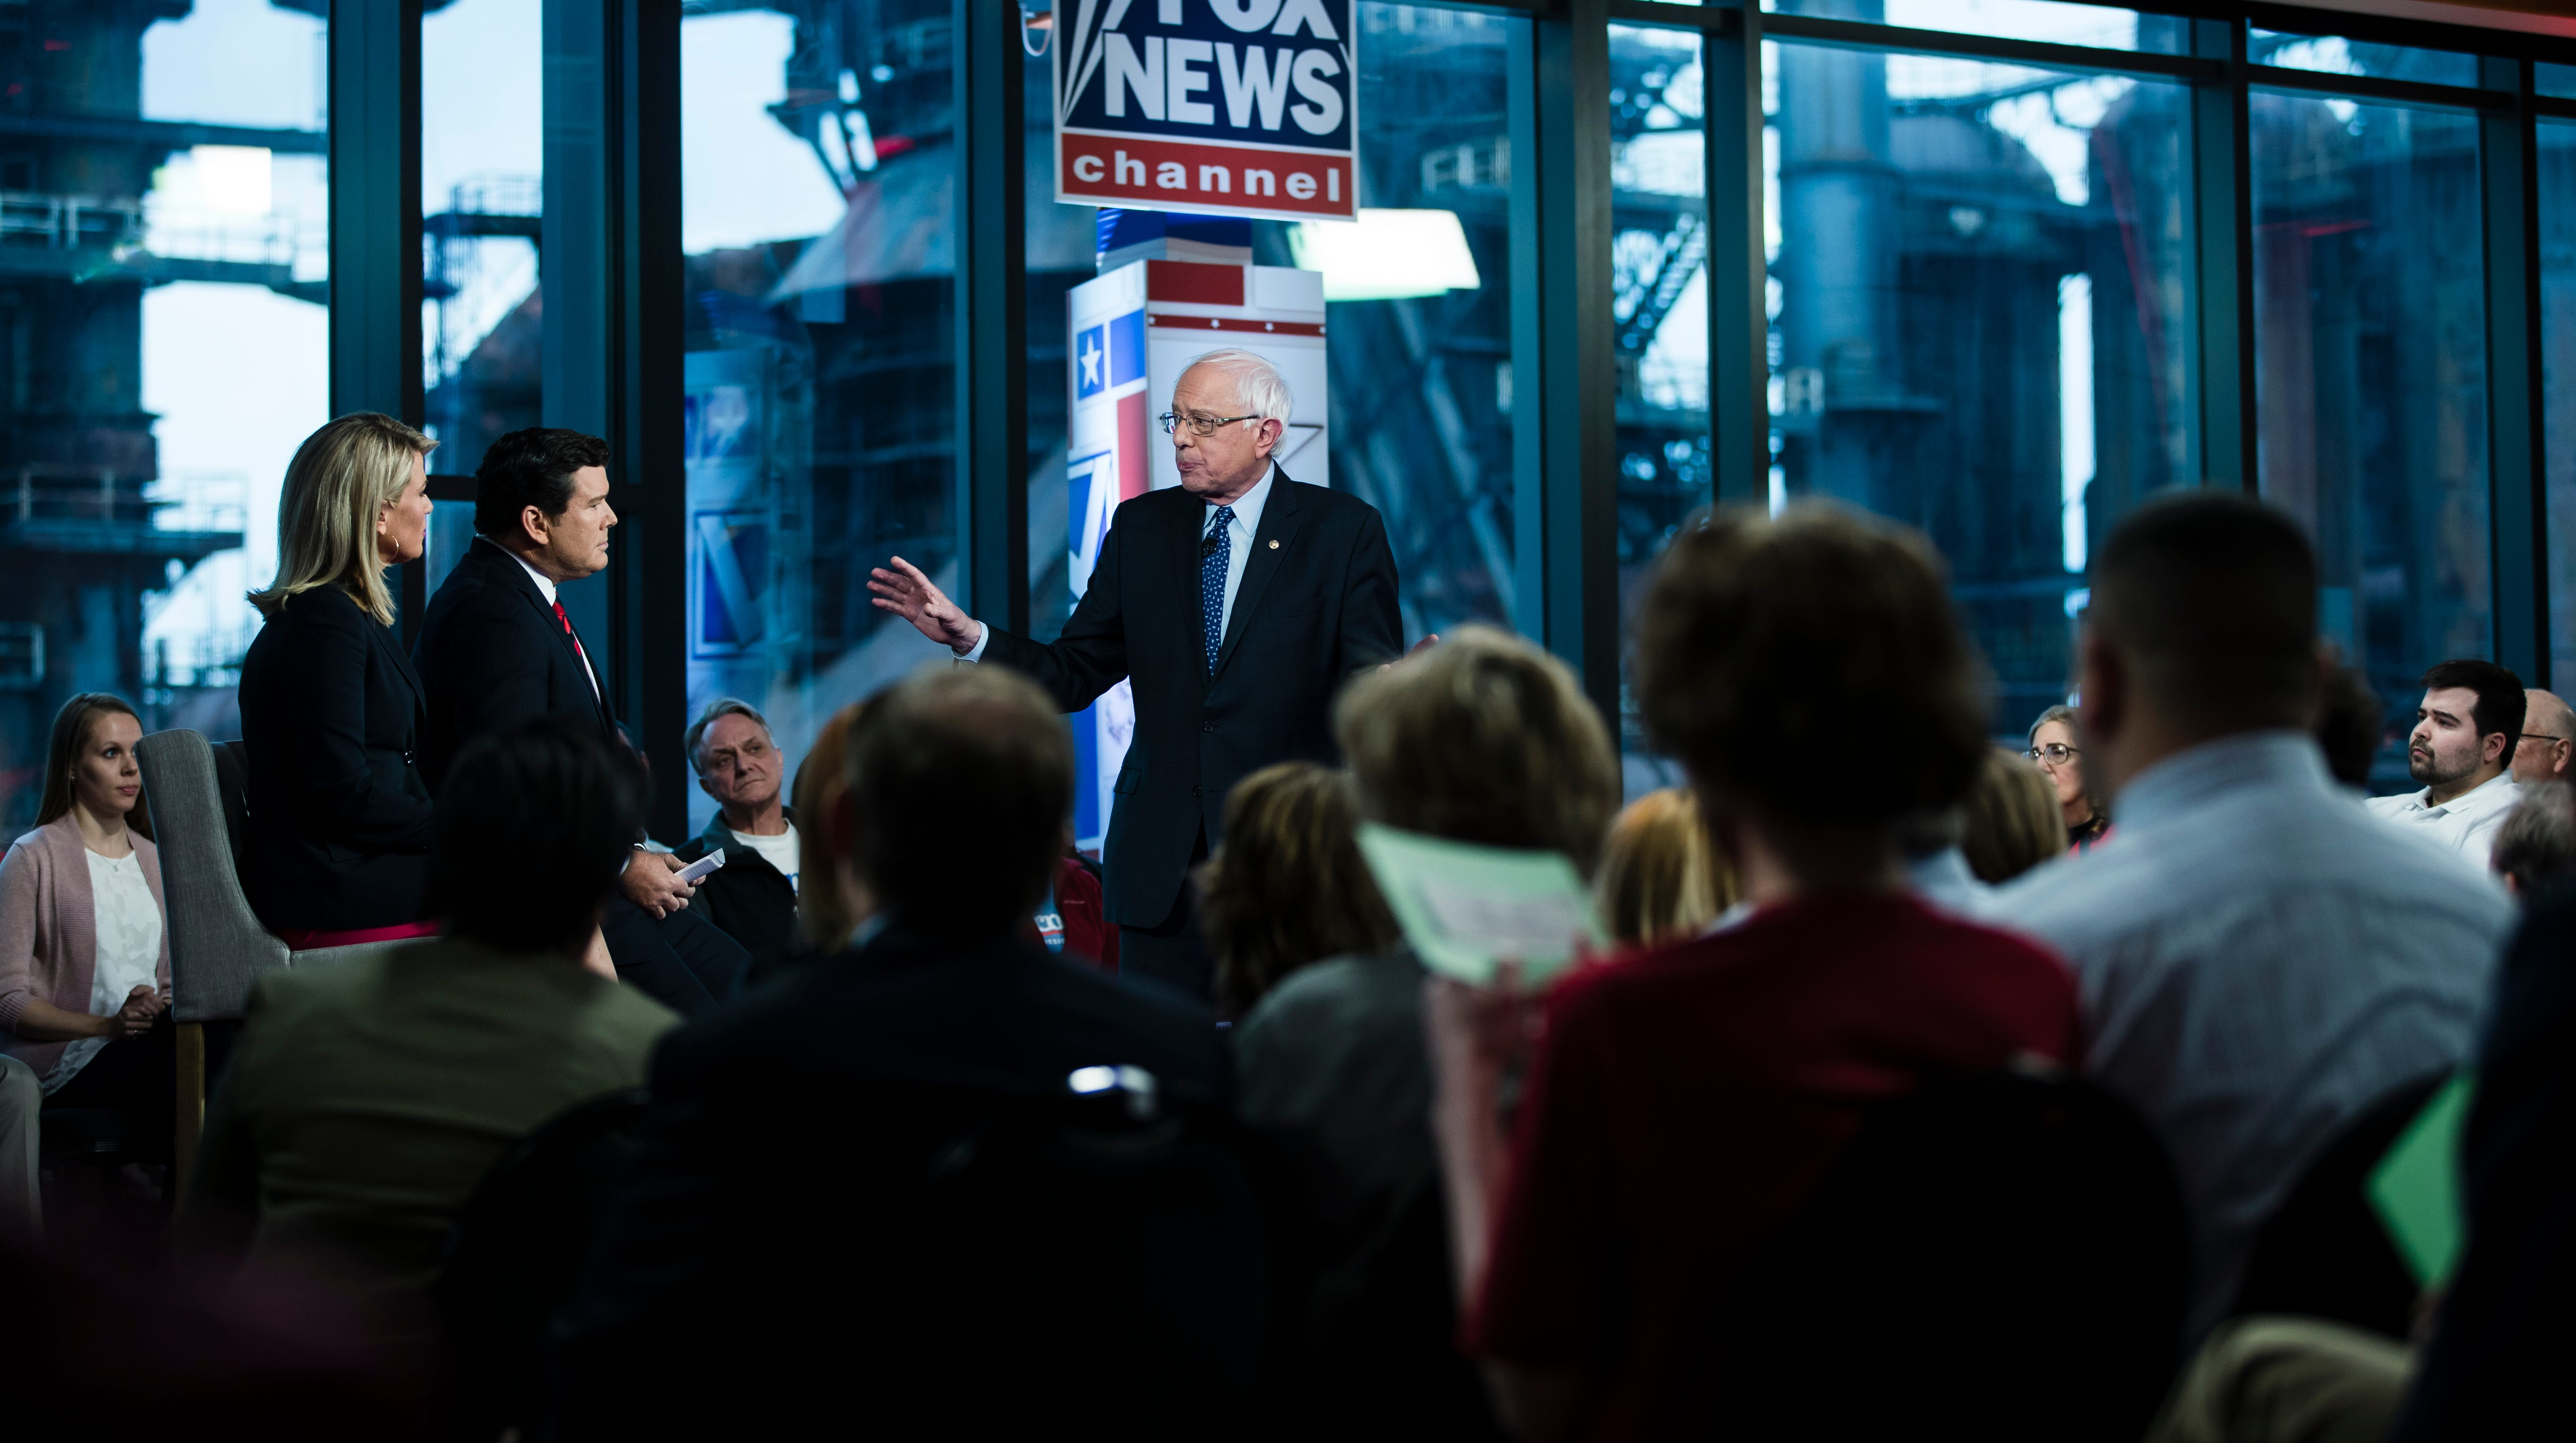 Bernie Sanders is Bernie Sanders at Fox News town hall and survives. Who's next? Anyone? | Opinion